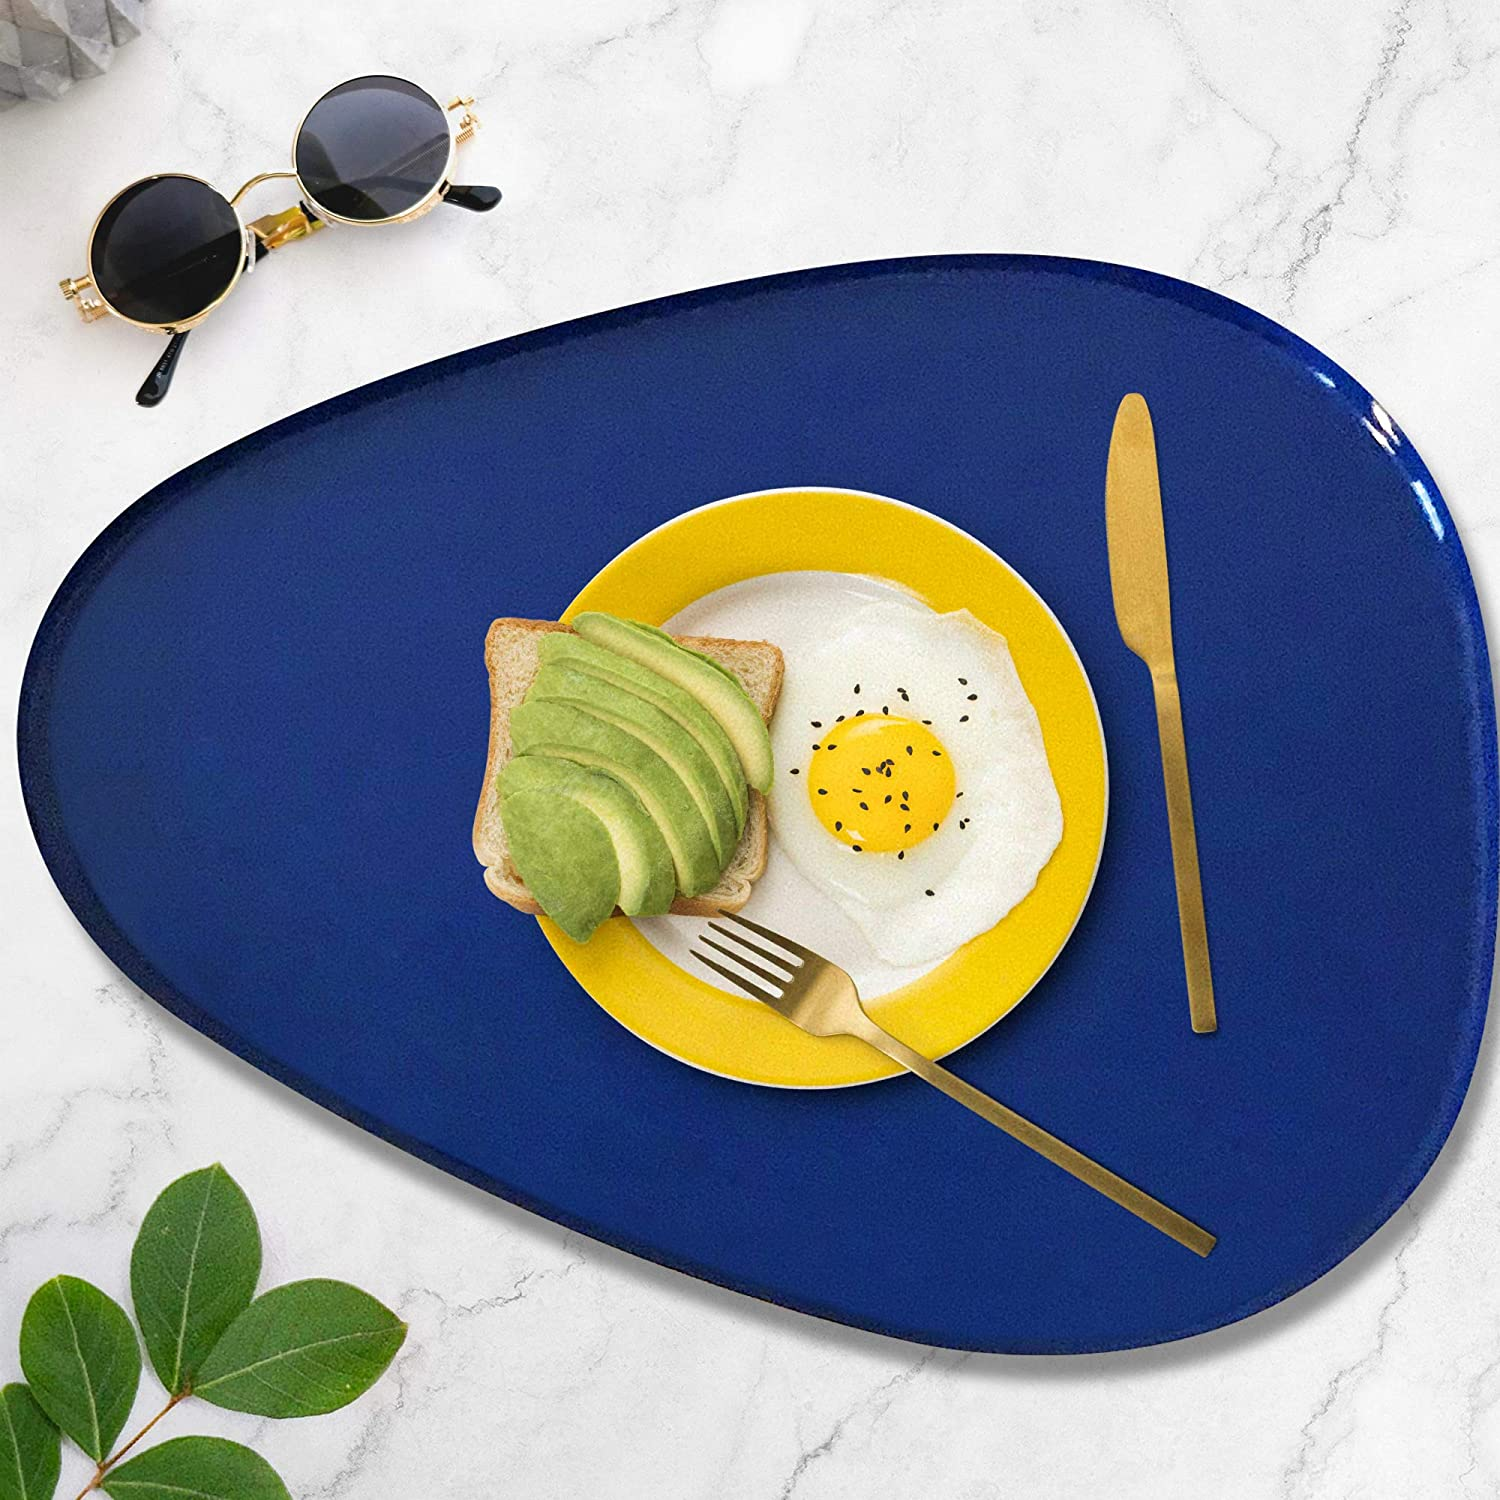 Allegorie Decorative Tray | Stylish Vanity Organizer or Catchall Valet Display | Navy Blue & Gold Metal Serving Tray for Coffee Table, Ottoman, Bar, Liquor or Cocktails 16 x 12.5 inches: Home & Kitchen